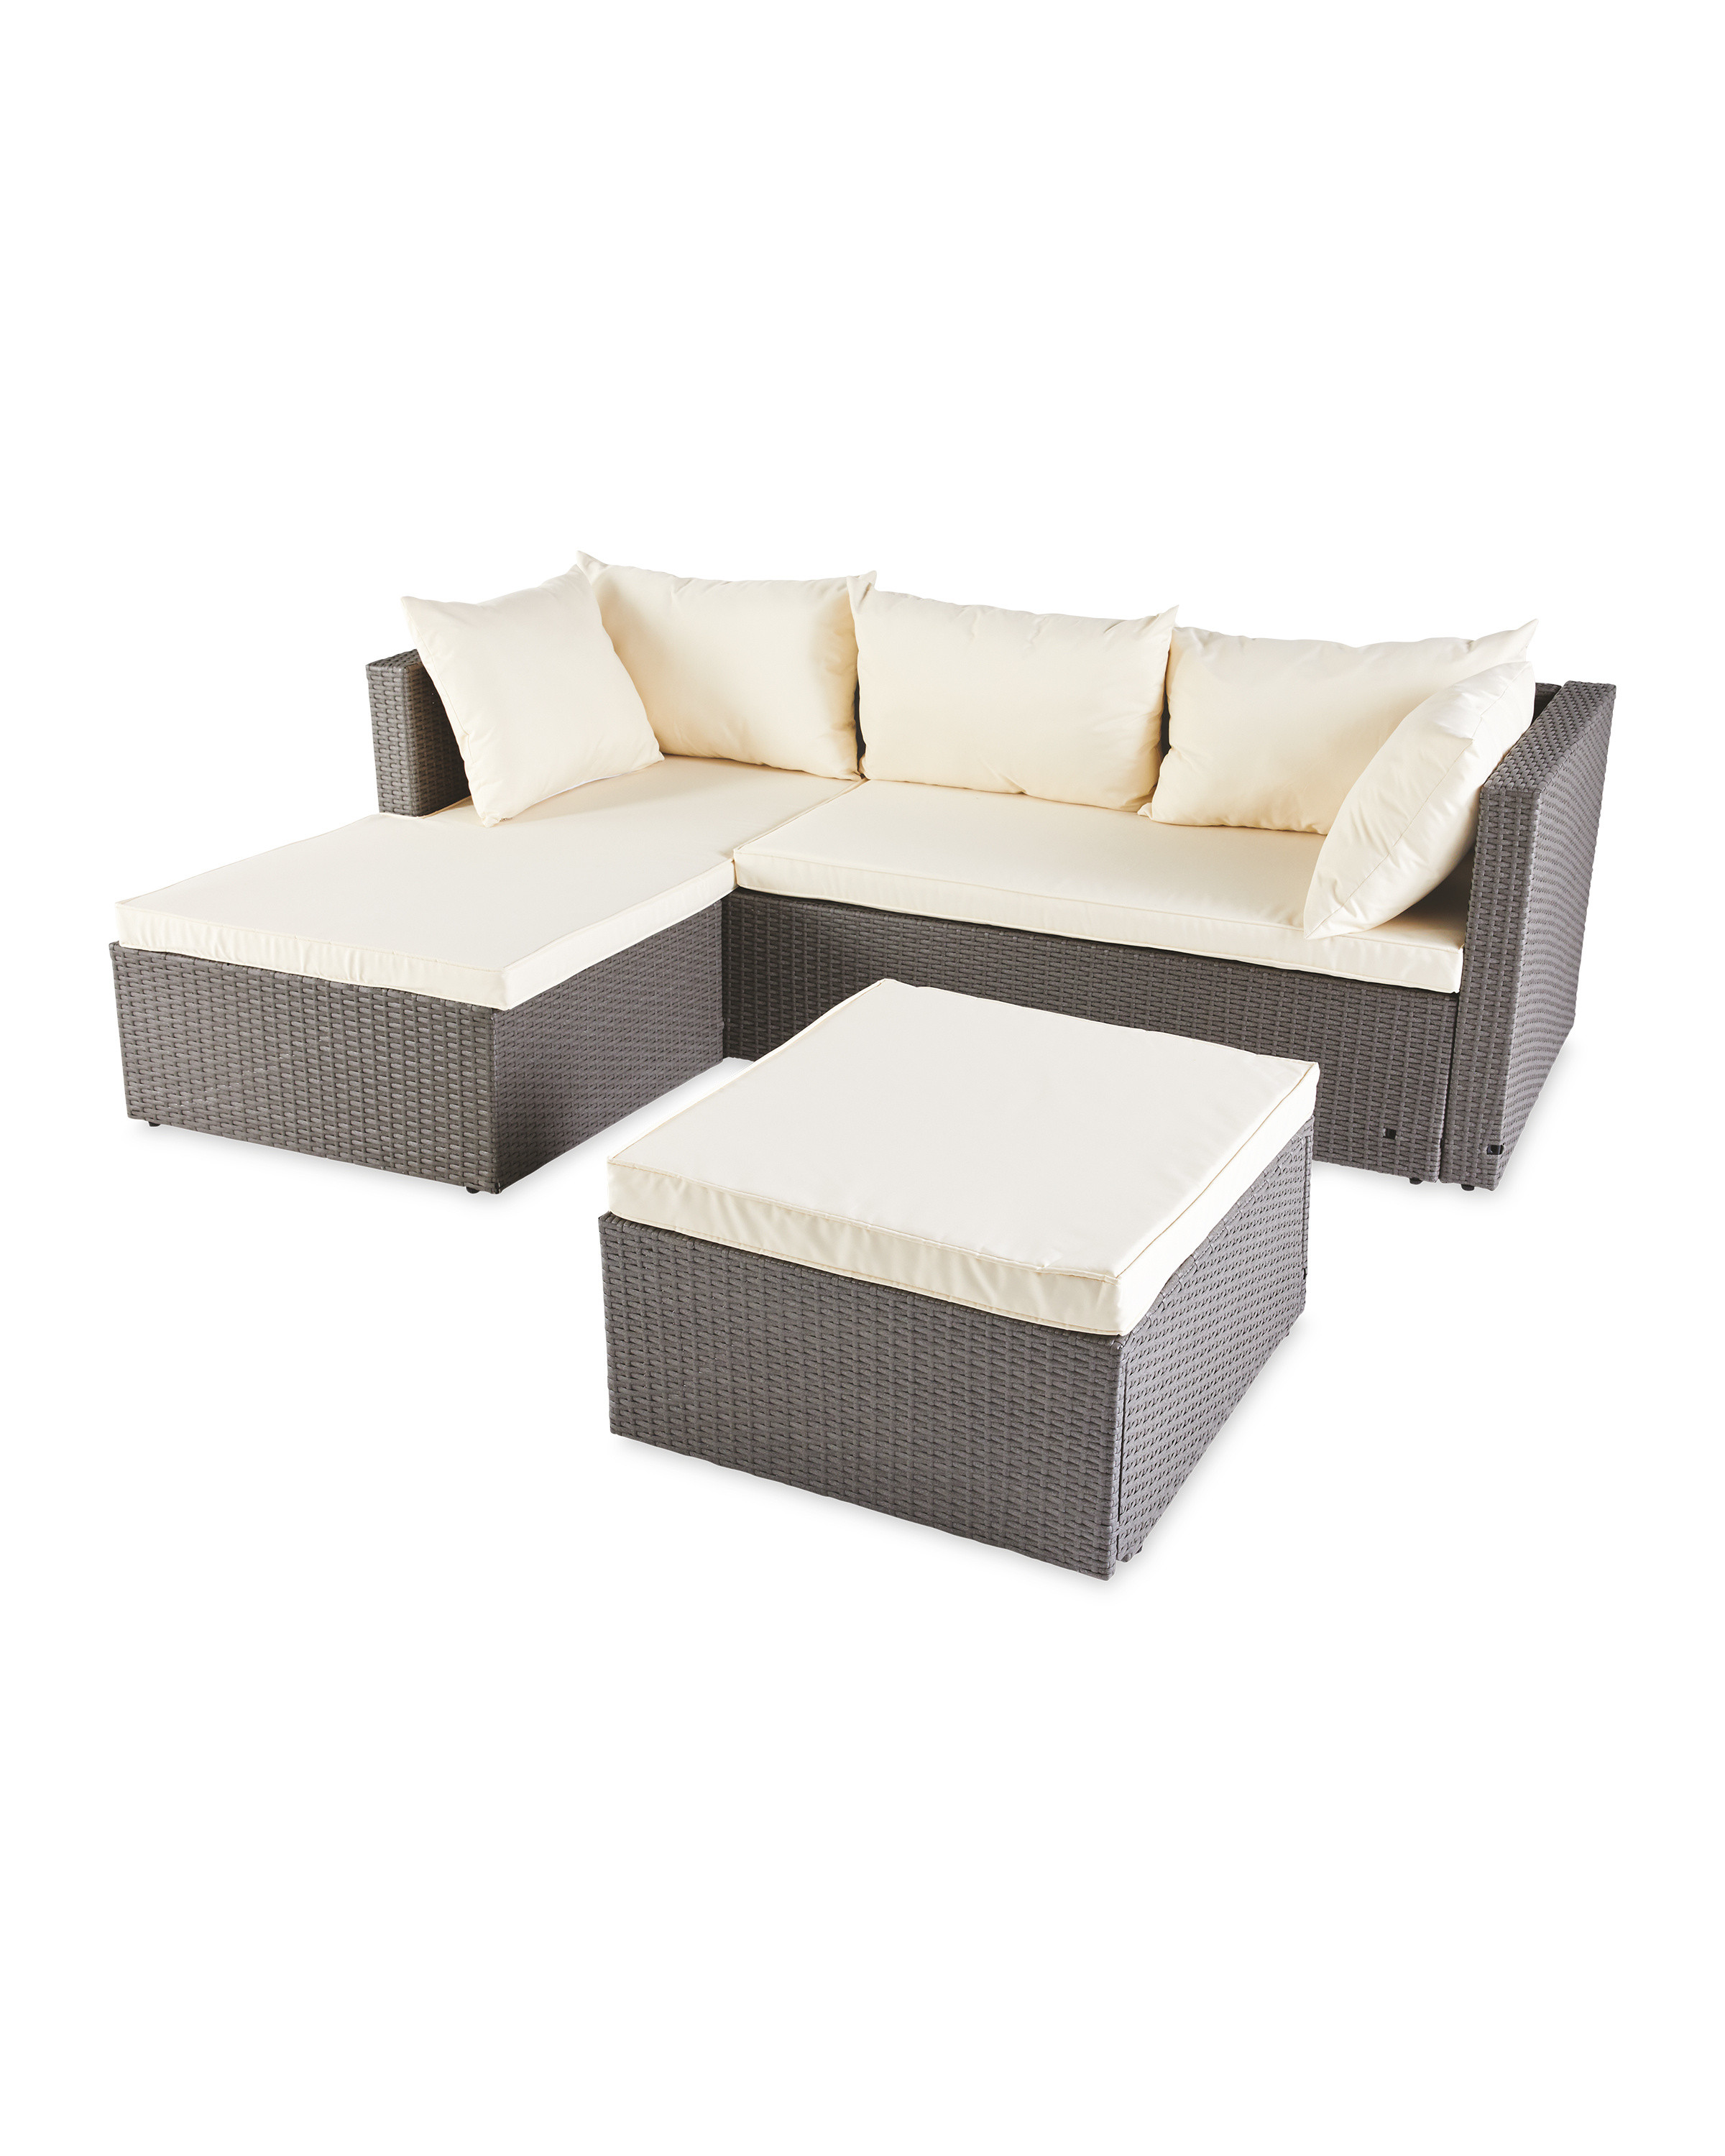 Couchtisch Aldi D.l Outdoor Furniture With Cream Cushion Poly Rattan Sofa Set - Buy Rattan Outdoor Furniture,rattan Round Outdoor Furniture,garden Treasures Outdoor Furniture Product On Alibaba.com